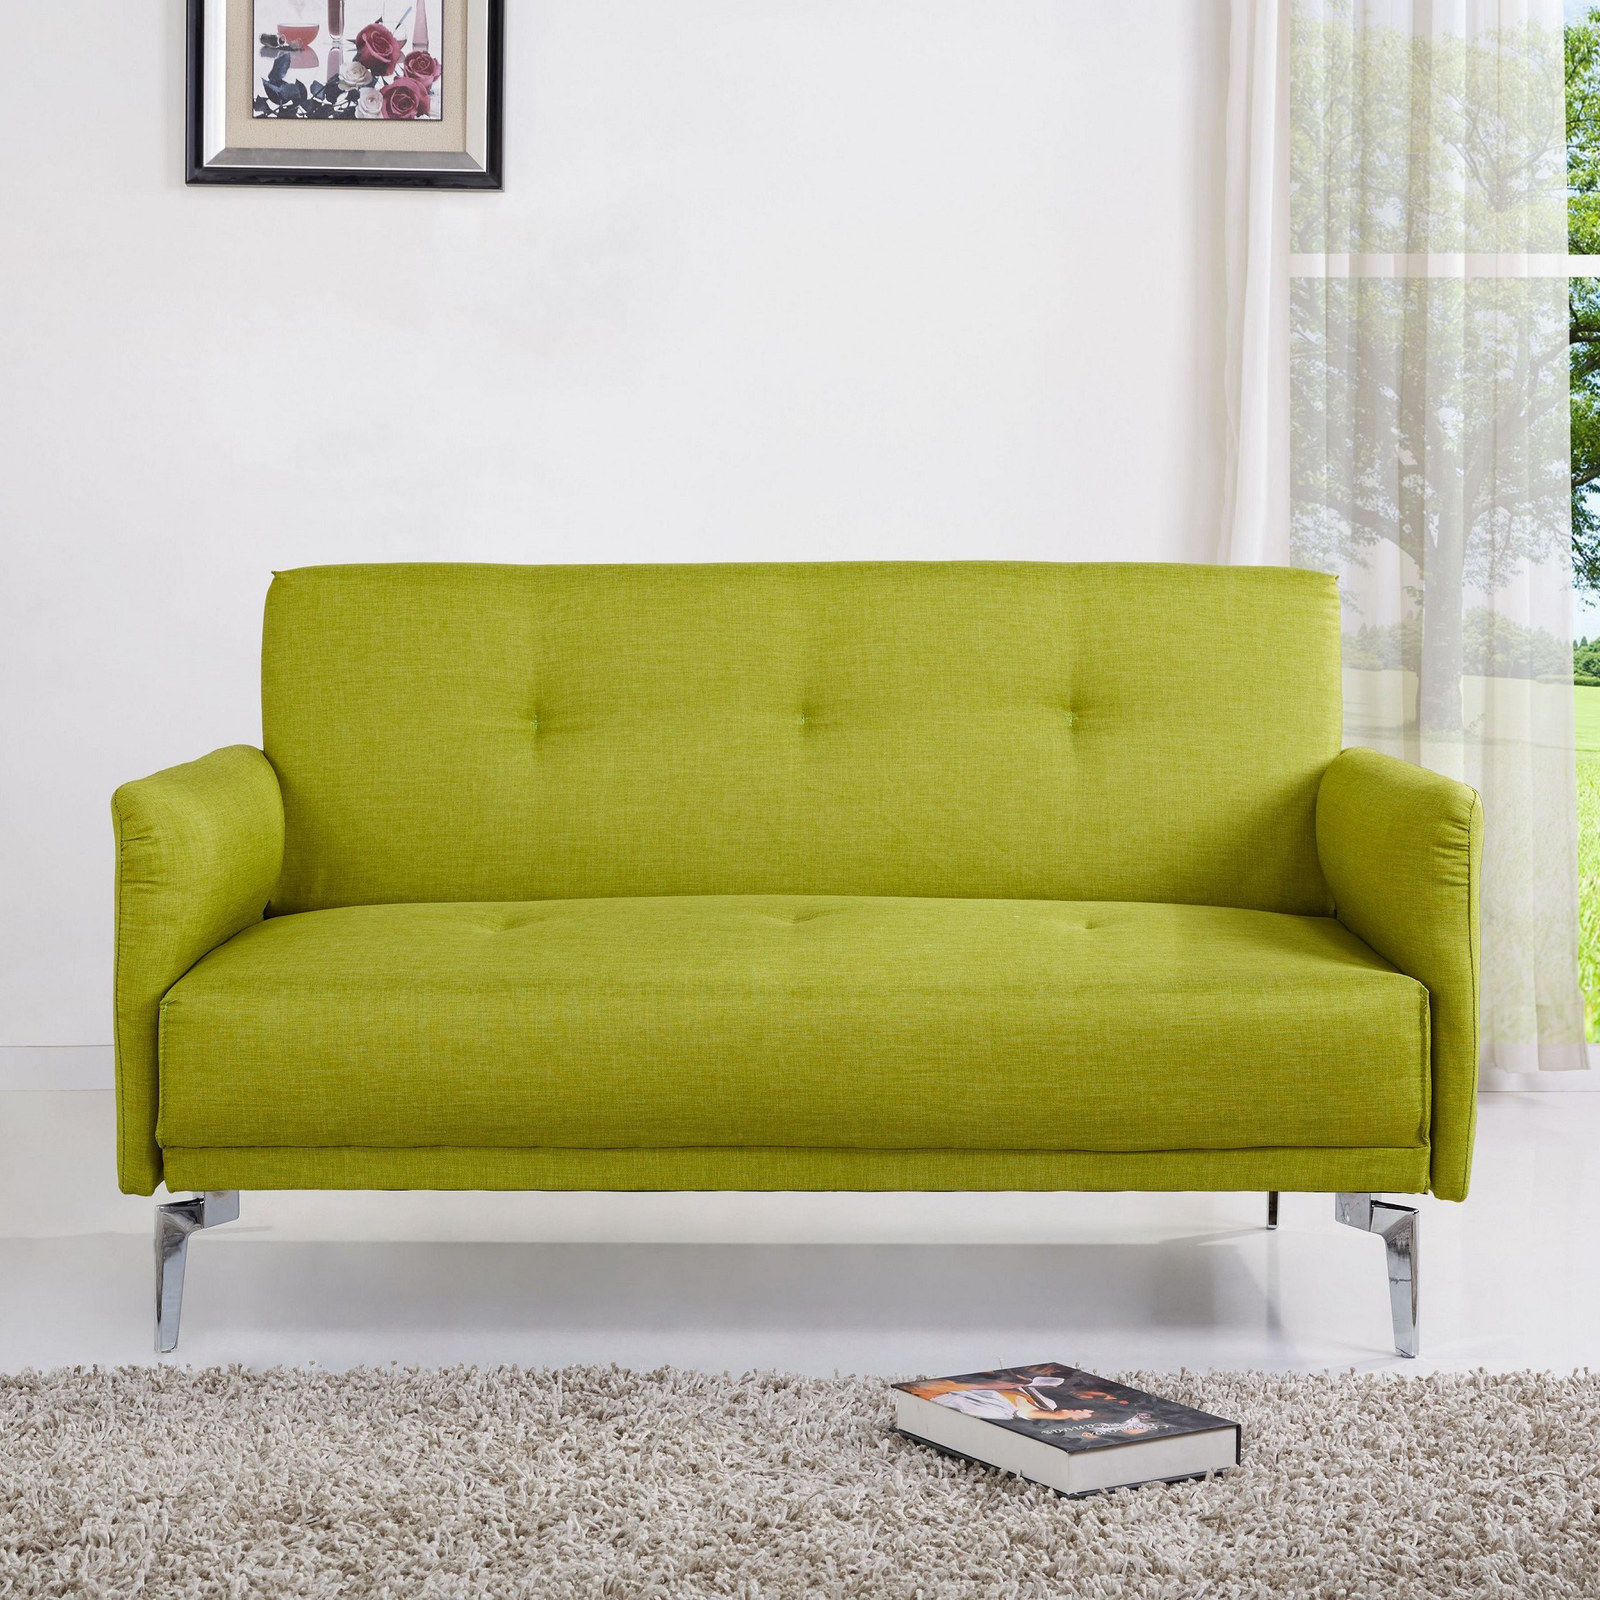 A Modern Sofa That Settles The Debate Once And For All: It Is Easy Being  Green. A Green Loveseat, That Is.